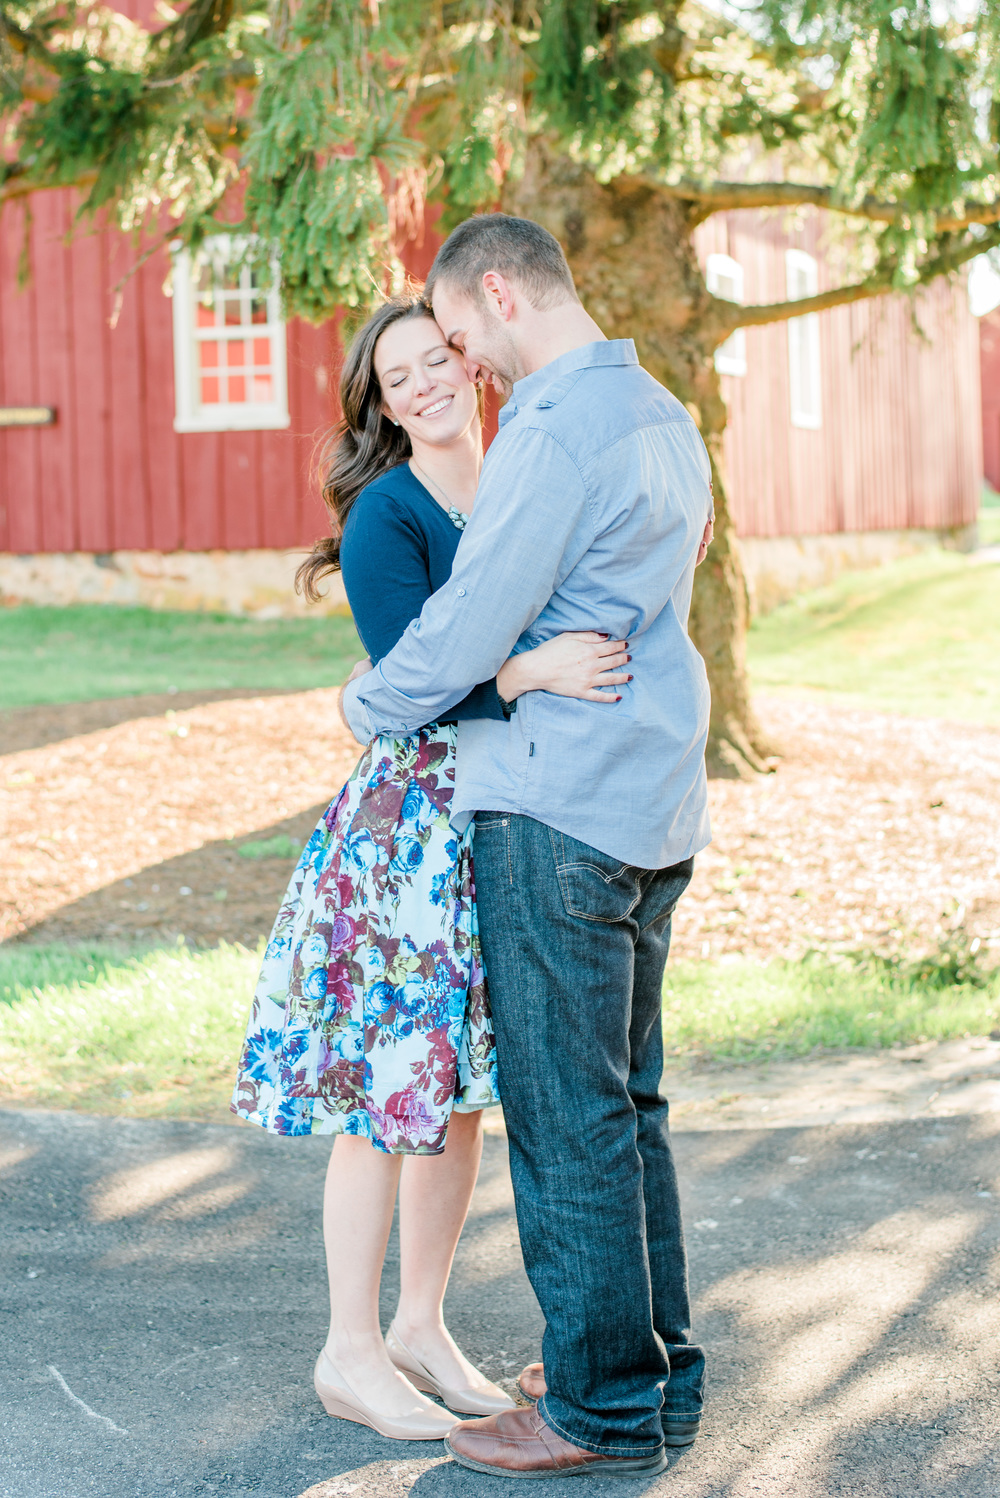 Another stunning couple! | Engagement Session | Spring | Chester County, PA | Krista Brackin Photography